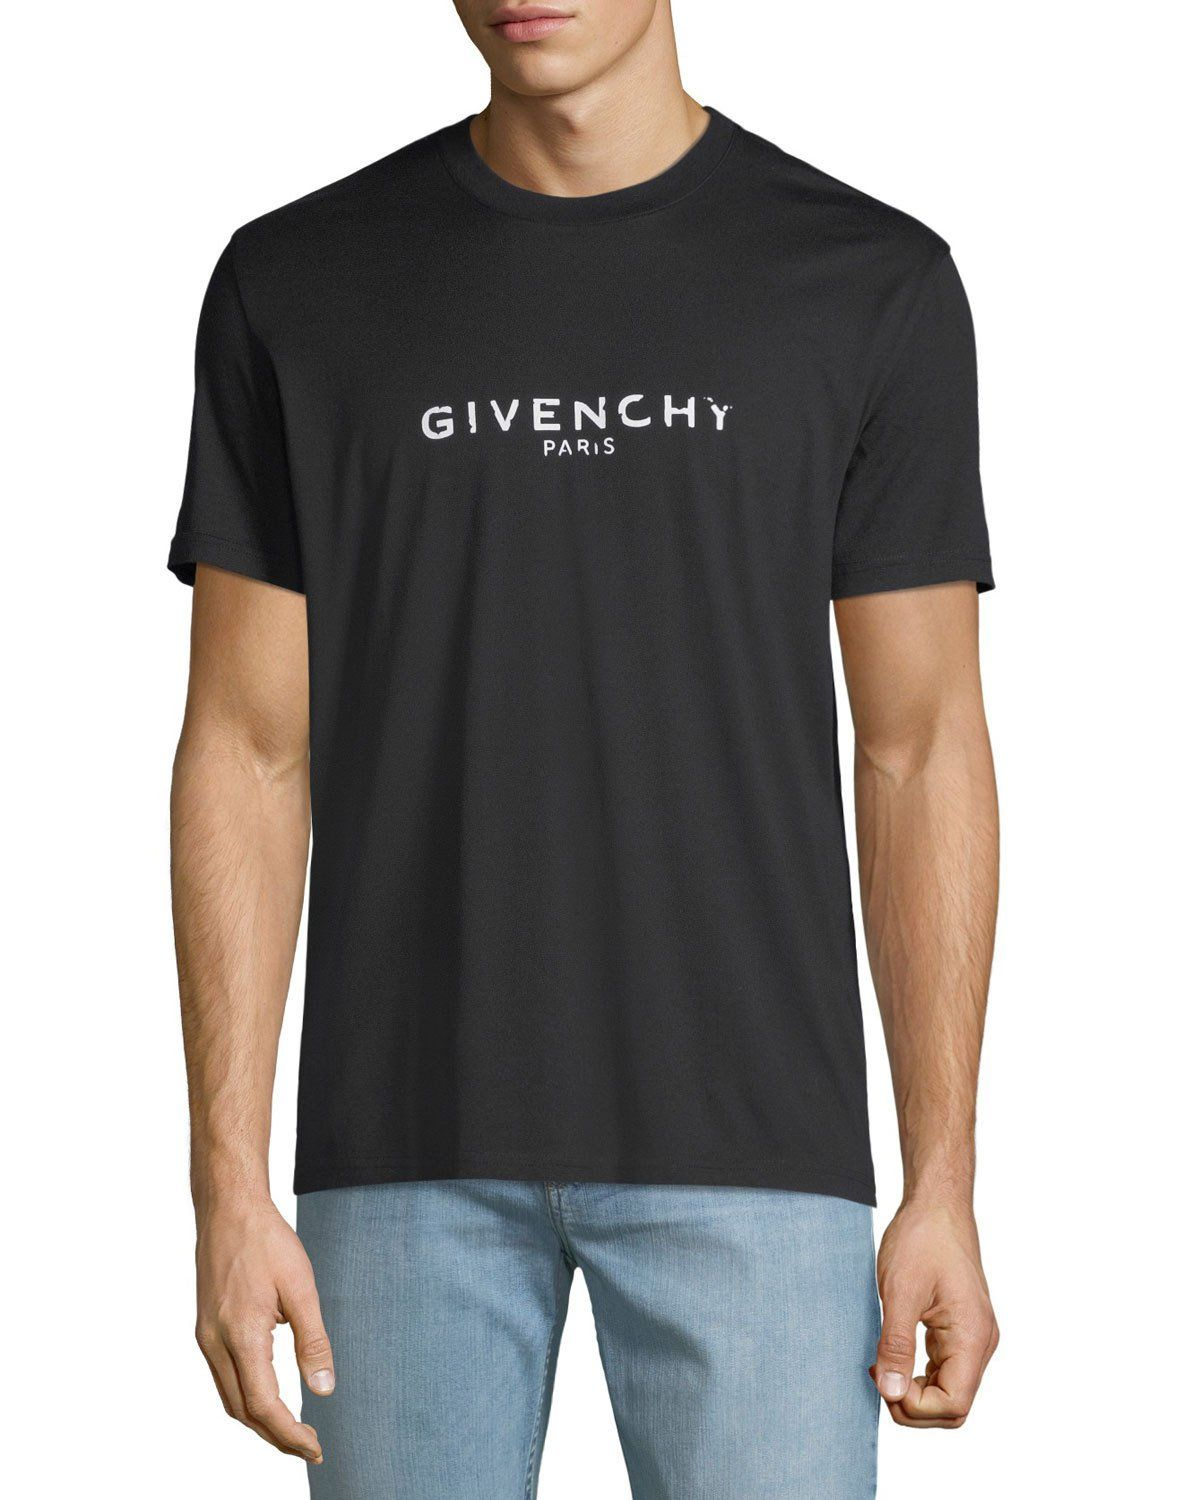 1f6d9f9d Givenchy Men's Destroyed Logo Graphic T-Shirt | T-shirts | Givenchy ...